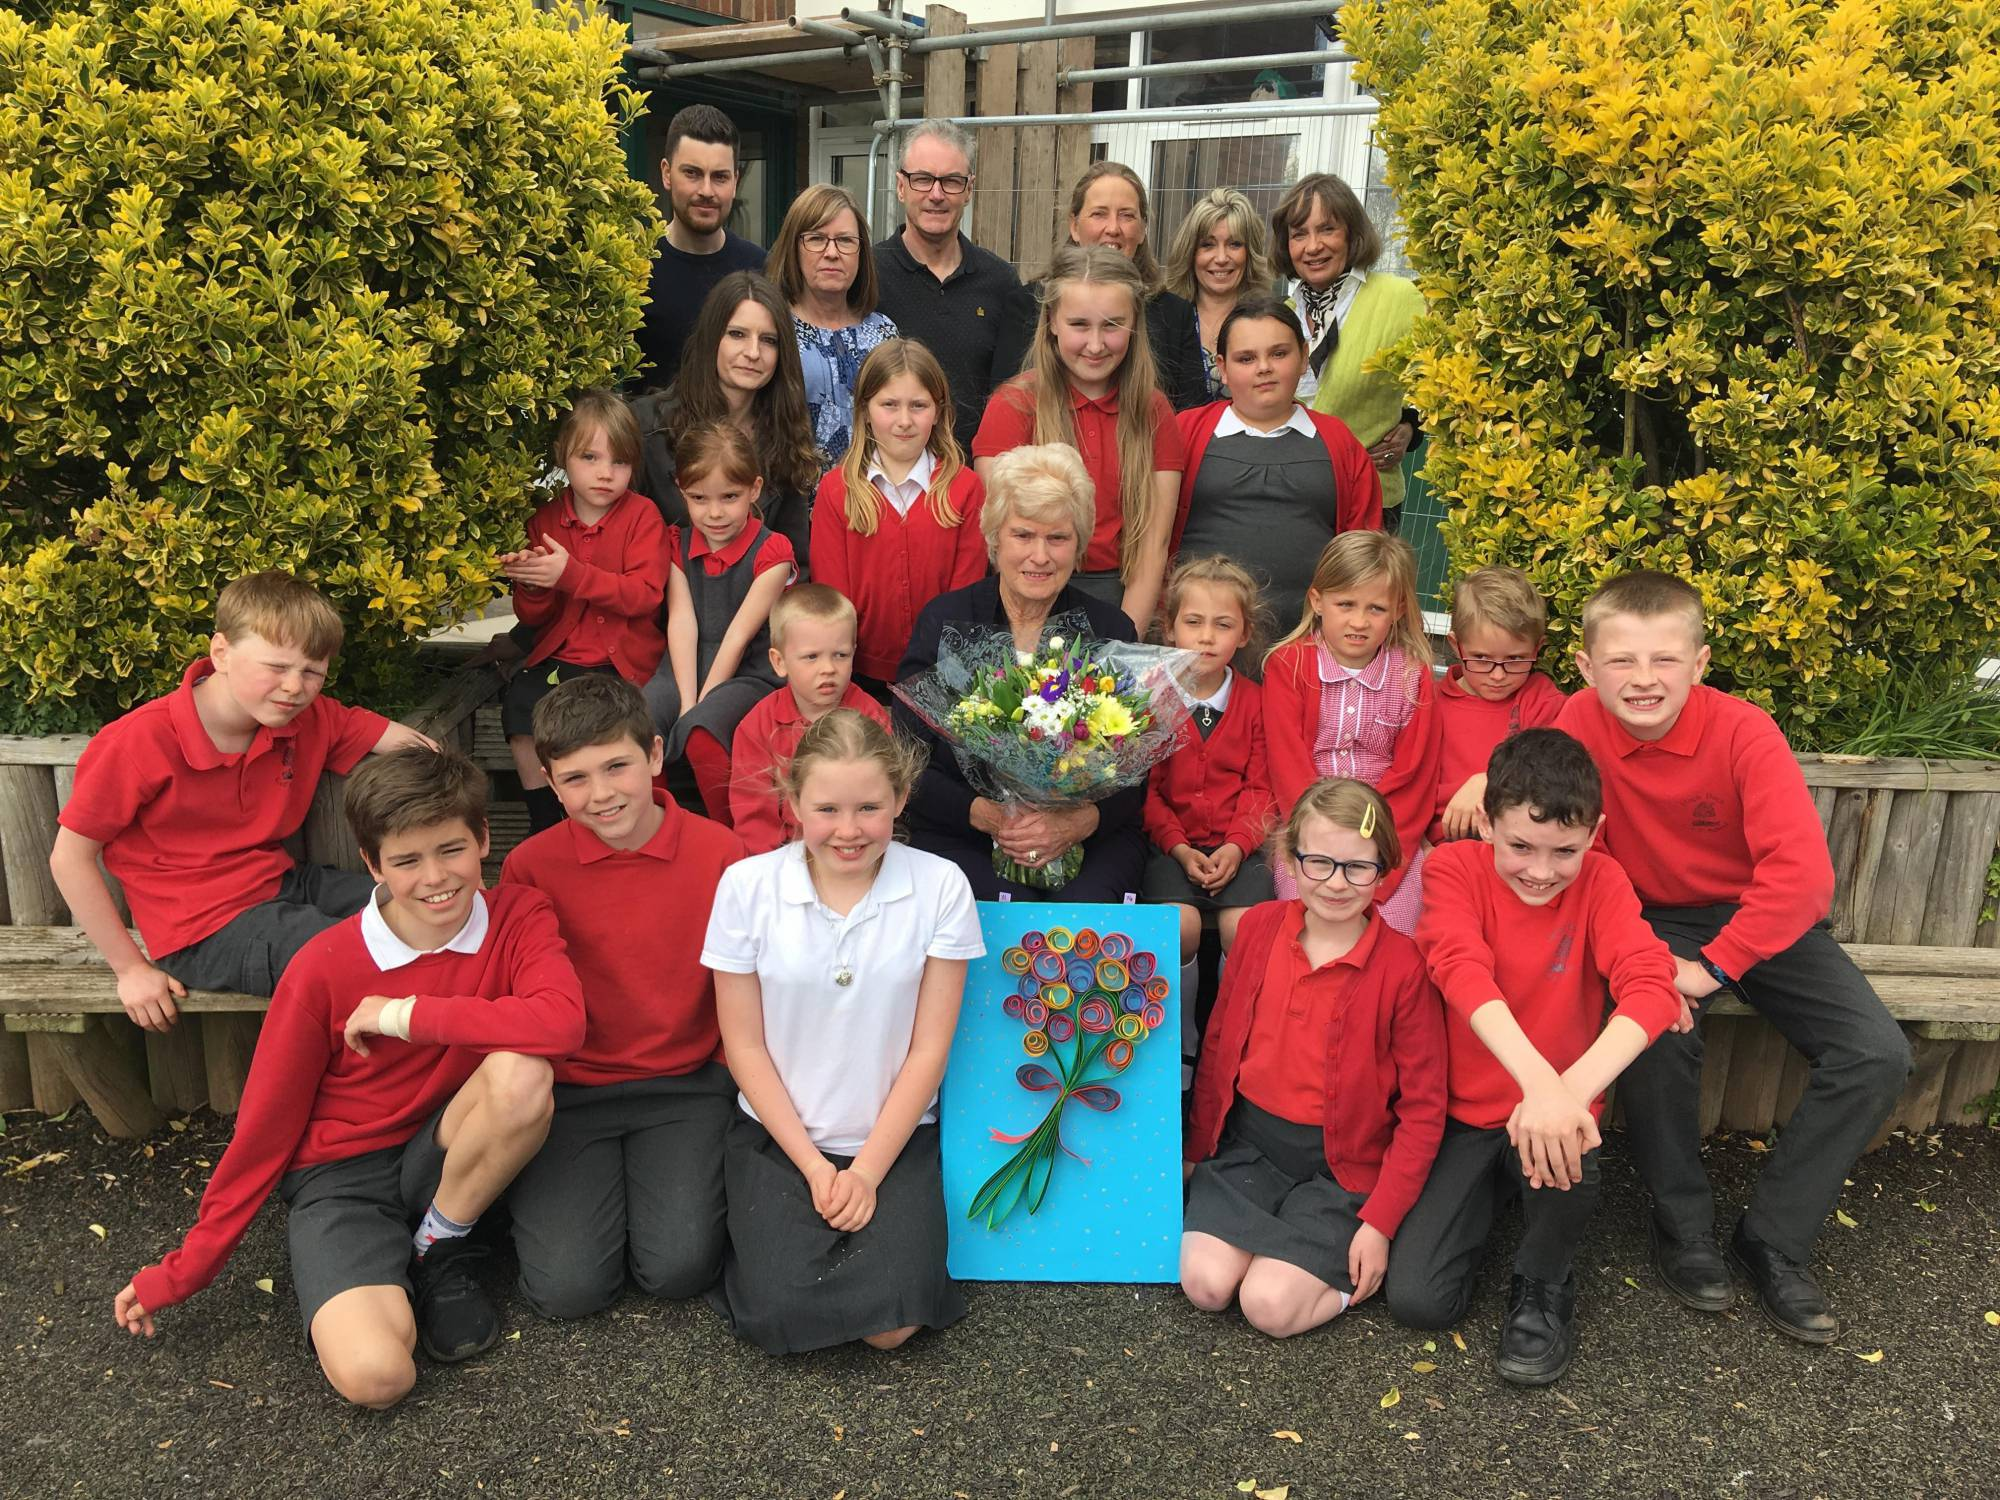 Herefordshire supervisor bids a fond farewell to staff and pupils at Much Birch CE Primary School